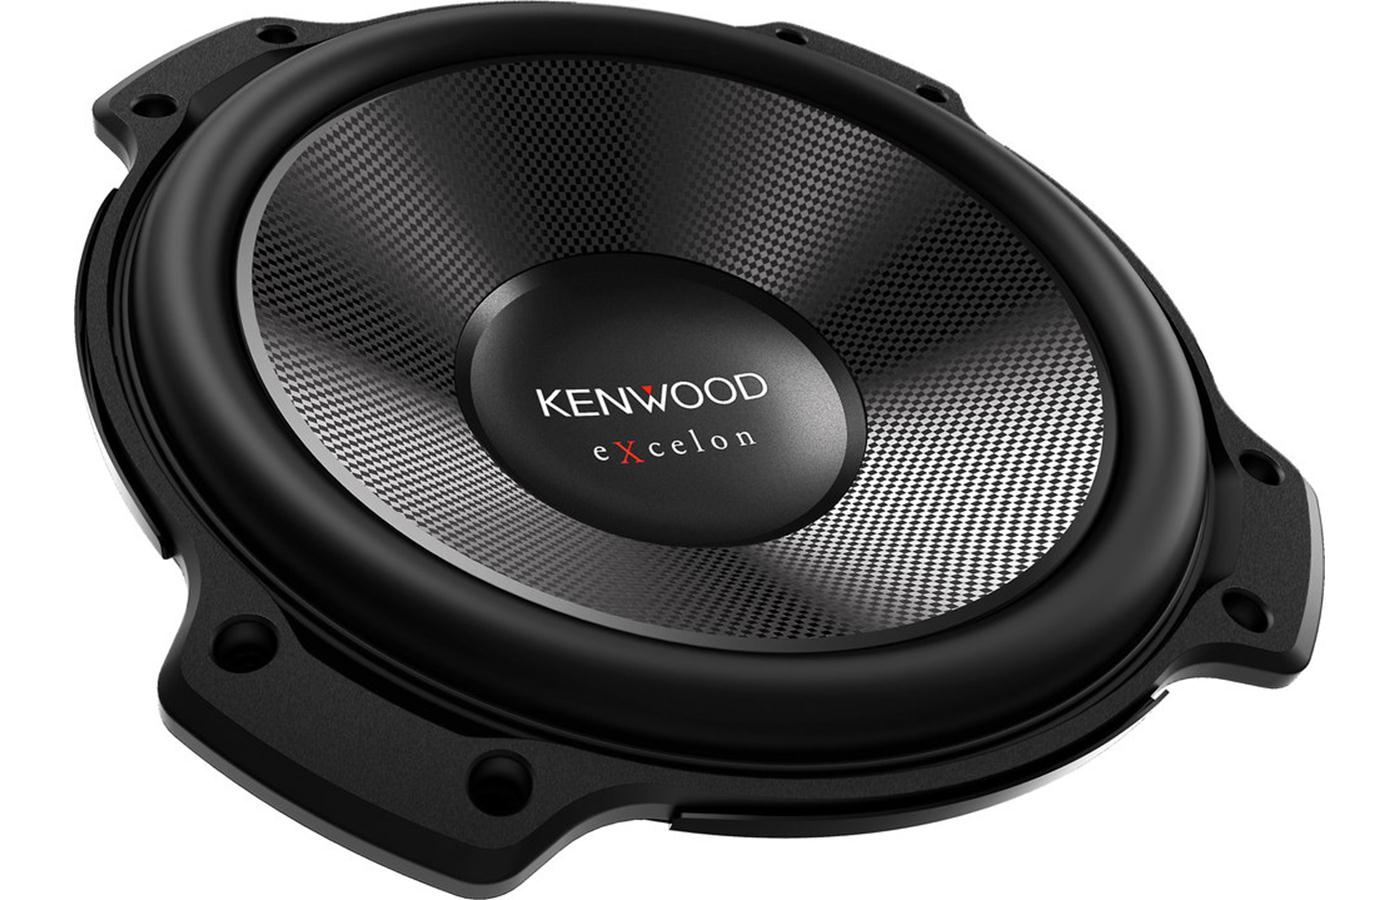 Kenwood Kfc Xw120 Excelon Series 12 Inch 4 Ohm Subwoofer